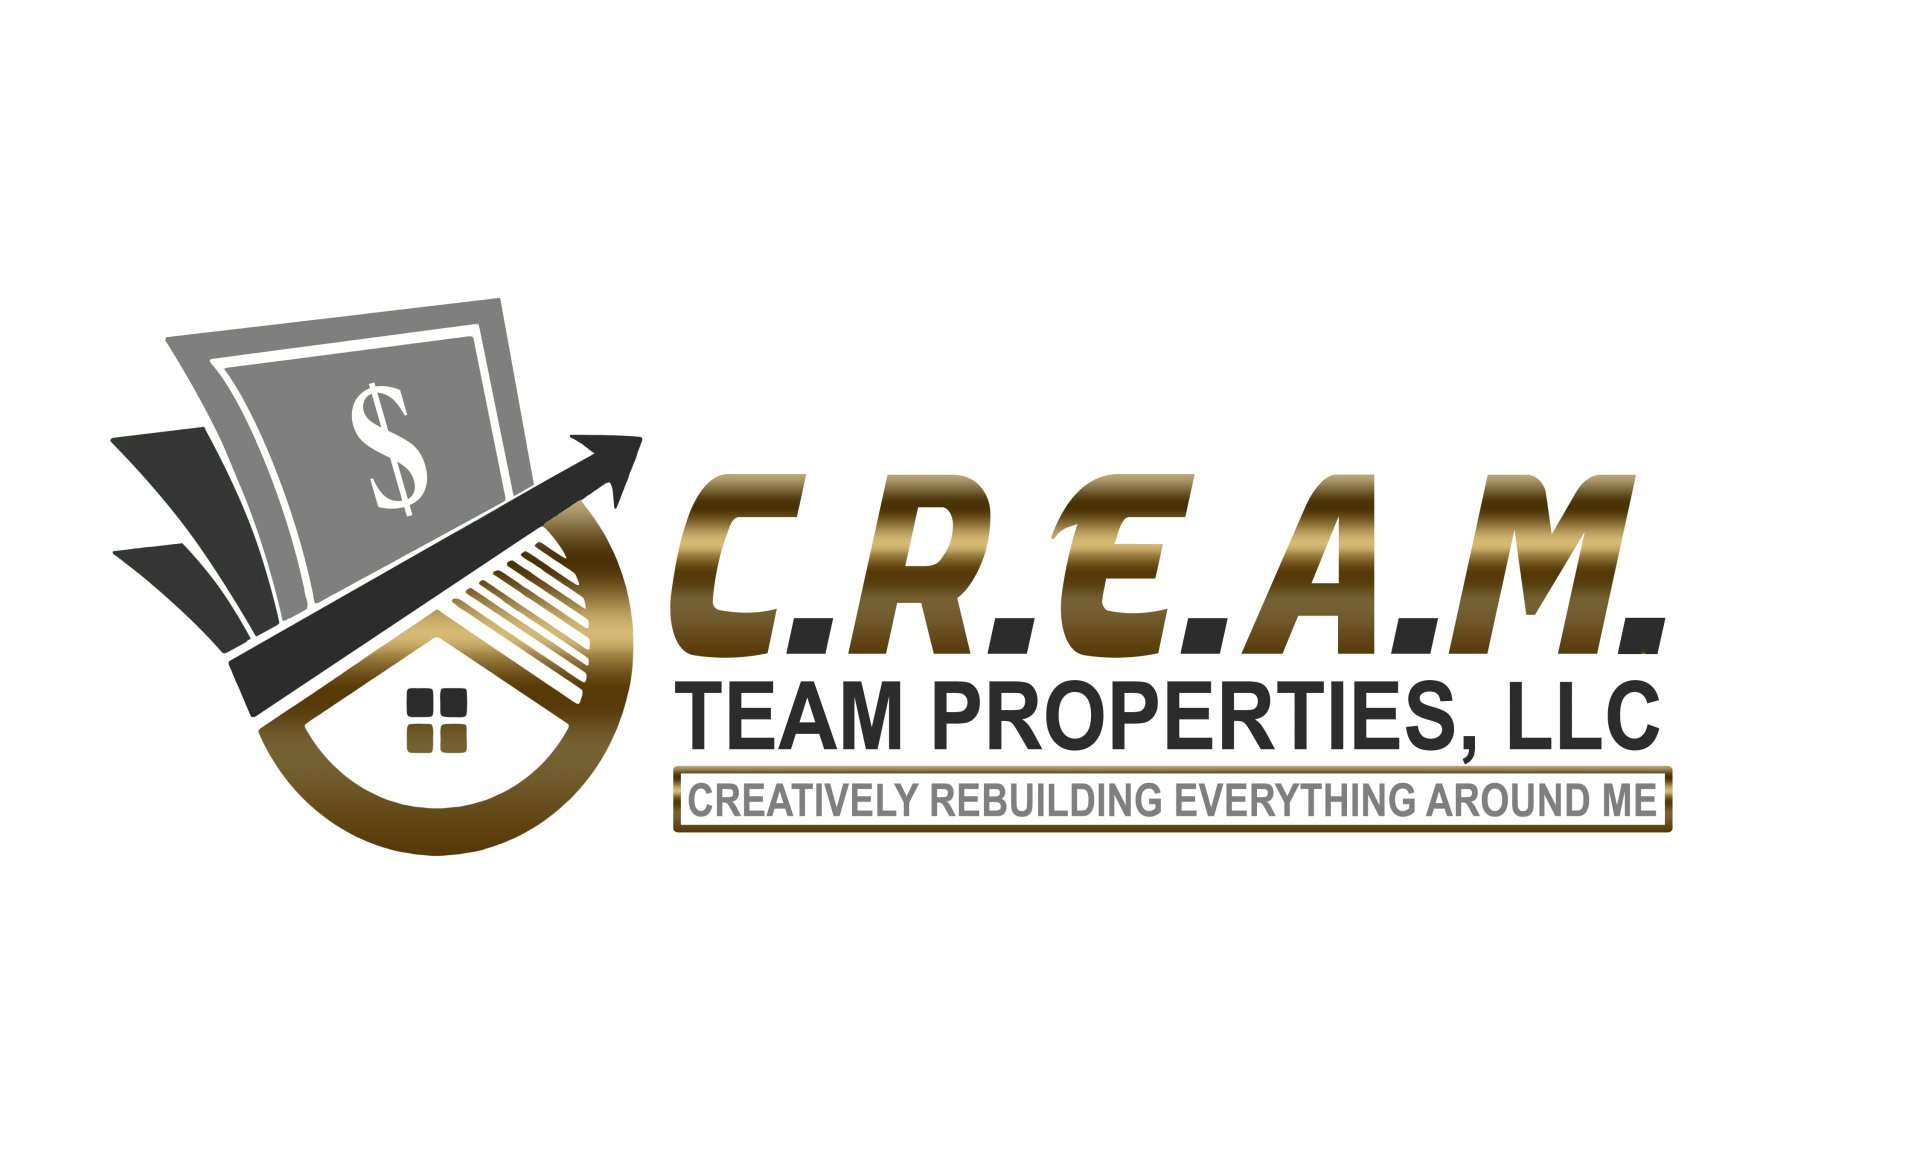 C.R.E.A.M. Team Properties, LLC  logo